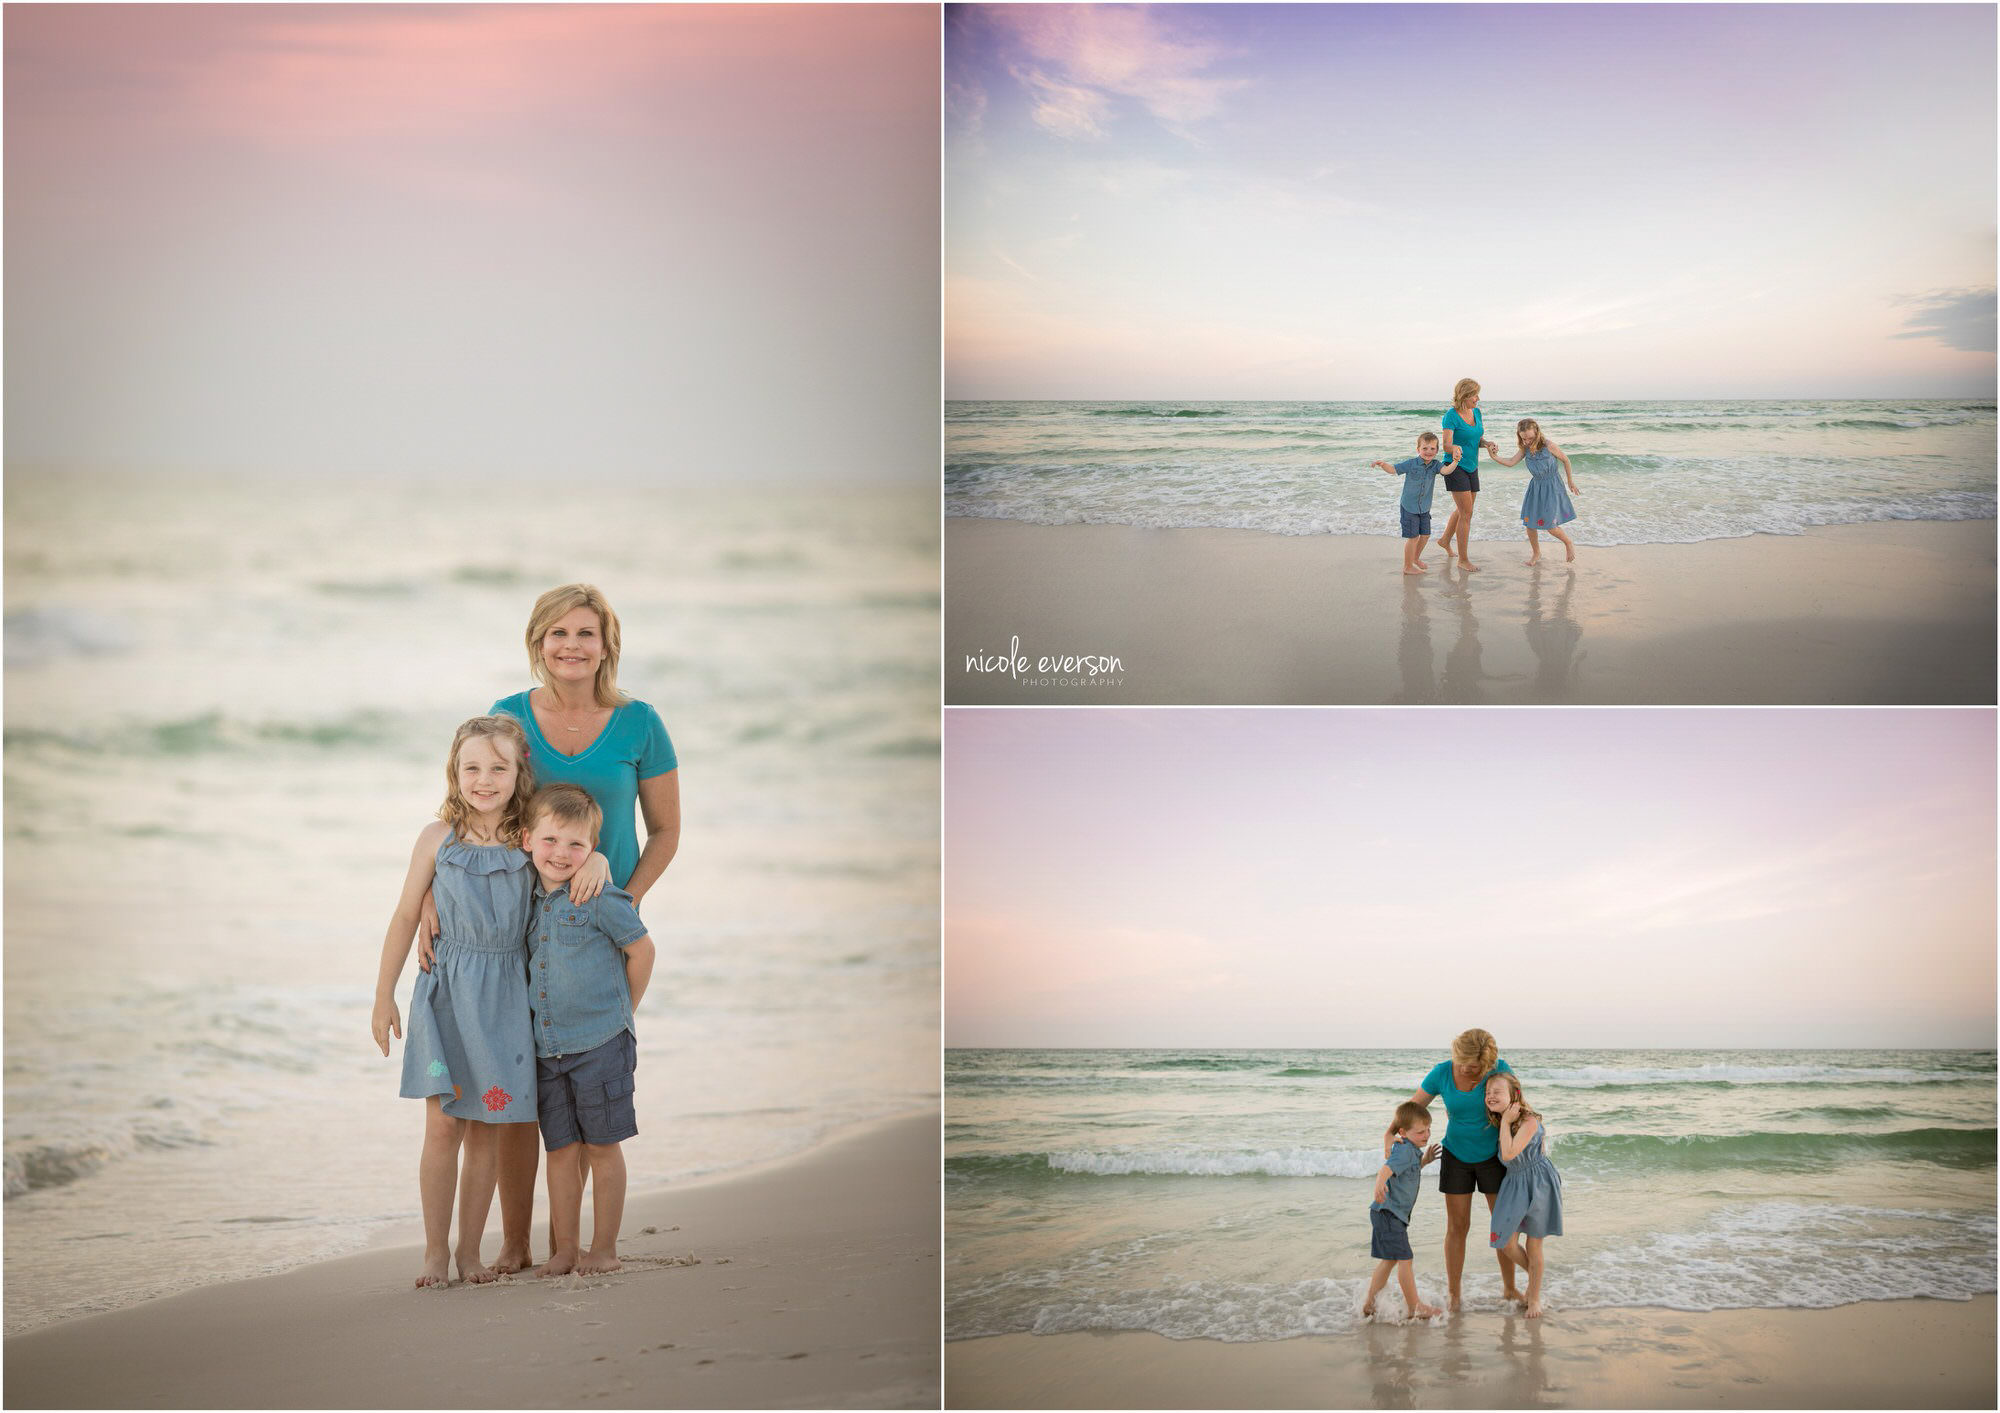 pictures of a family playing on the beach in Destin FL at sunset